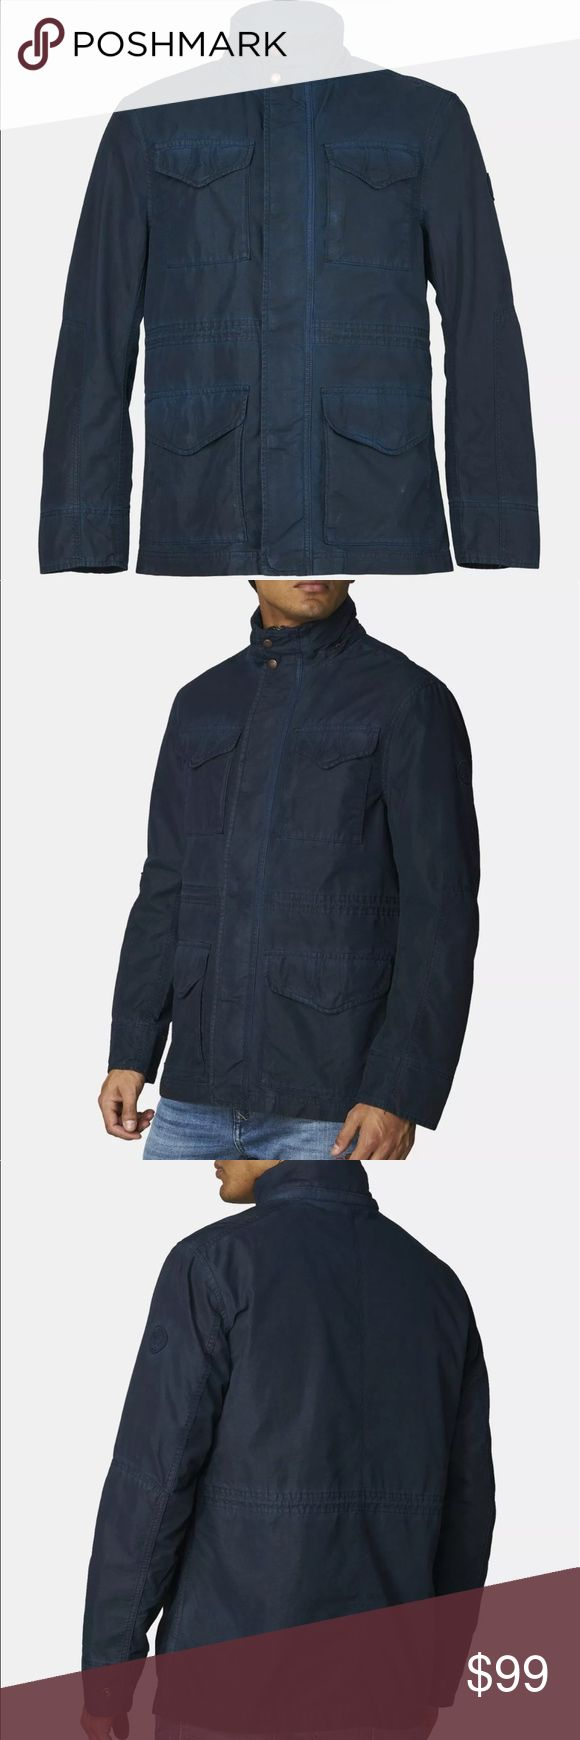 $228 TIMBERLAND MEN'S GARMENT DYE M65 JACKET $228 TIMBERLAND MEN'S GARMENT DYE M65 JACKET TB0A1JGV. Get the perfect wardrobe staple this season with the Timberland® Garment Dye M65 Jacket for men. With four pockets on the outside and a handy pocket on the inside, you will never be coming up short on space to store all your gadgets and accessories. Timberland Jackets & Coats Lightweight & Shirt Jackets